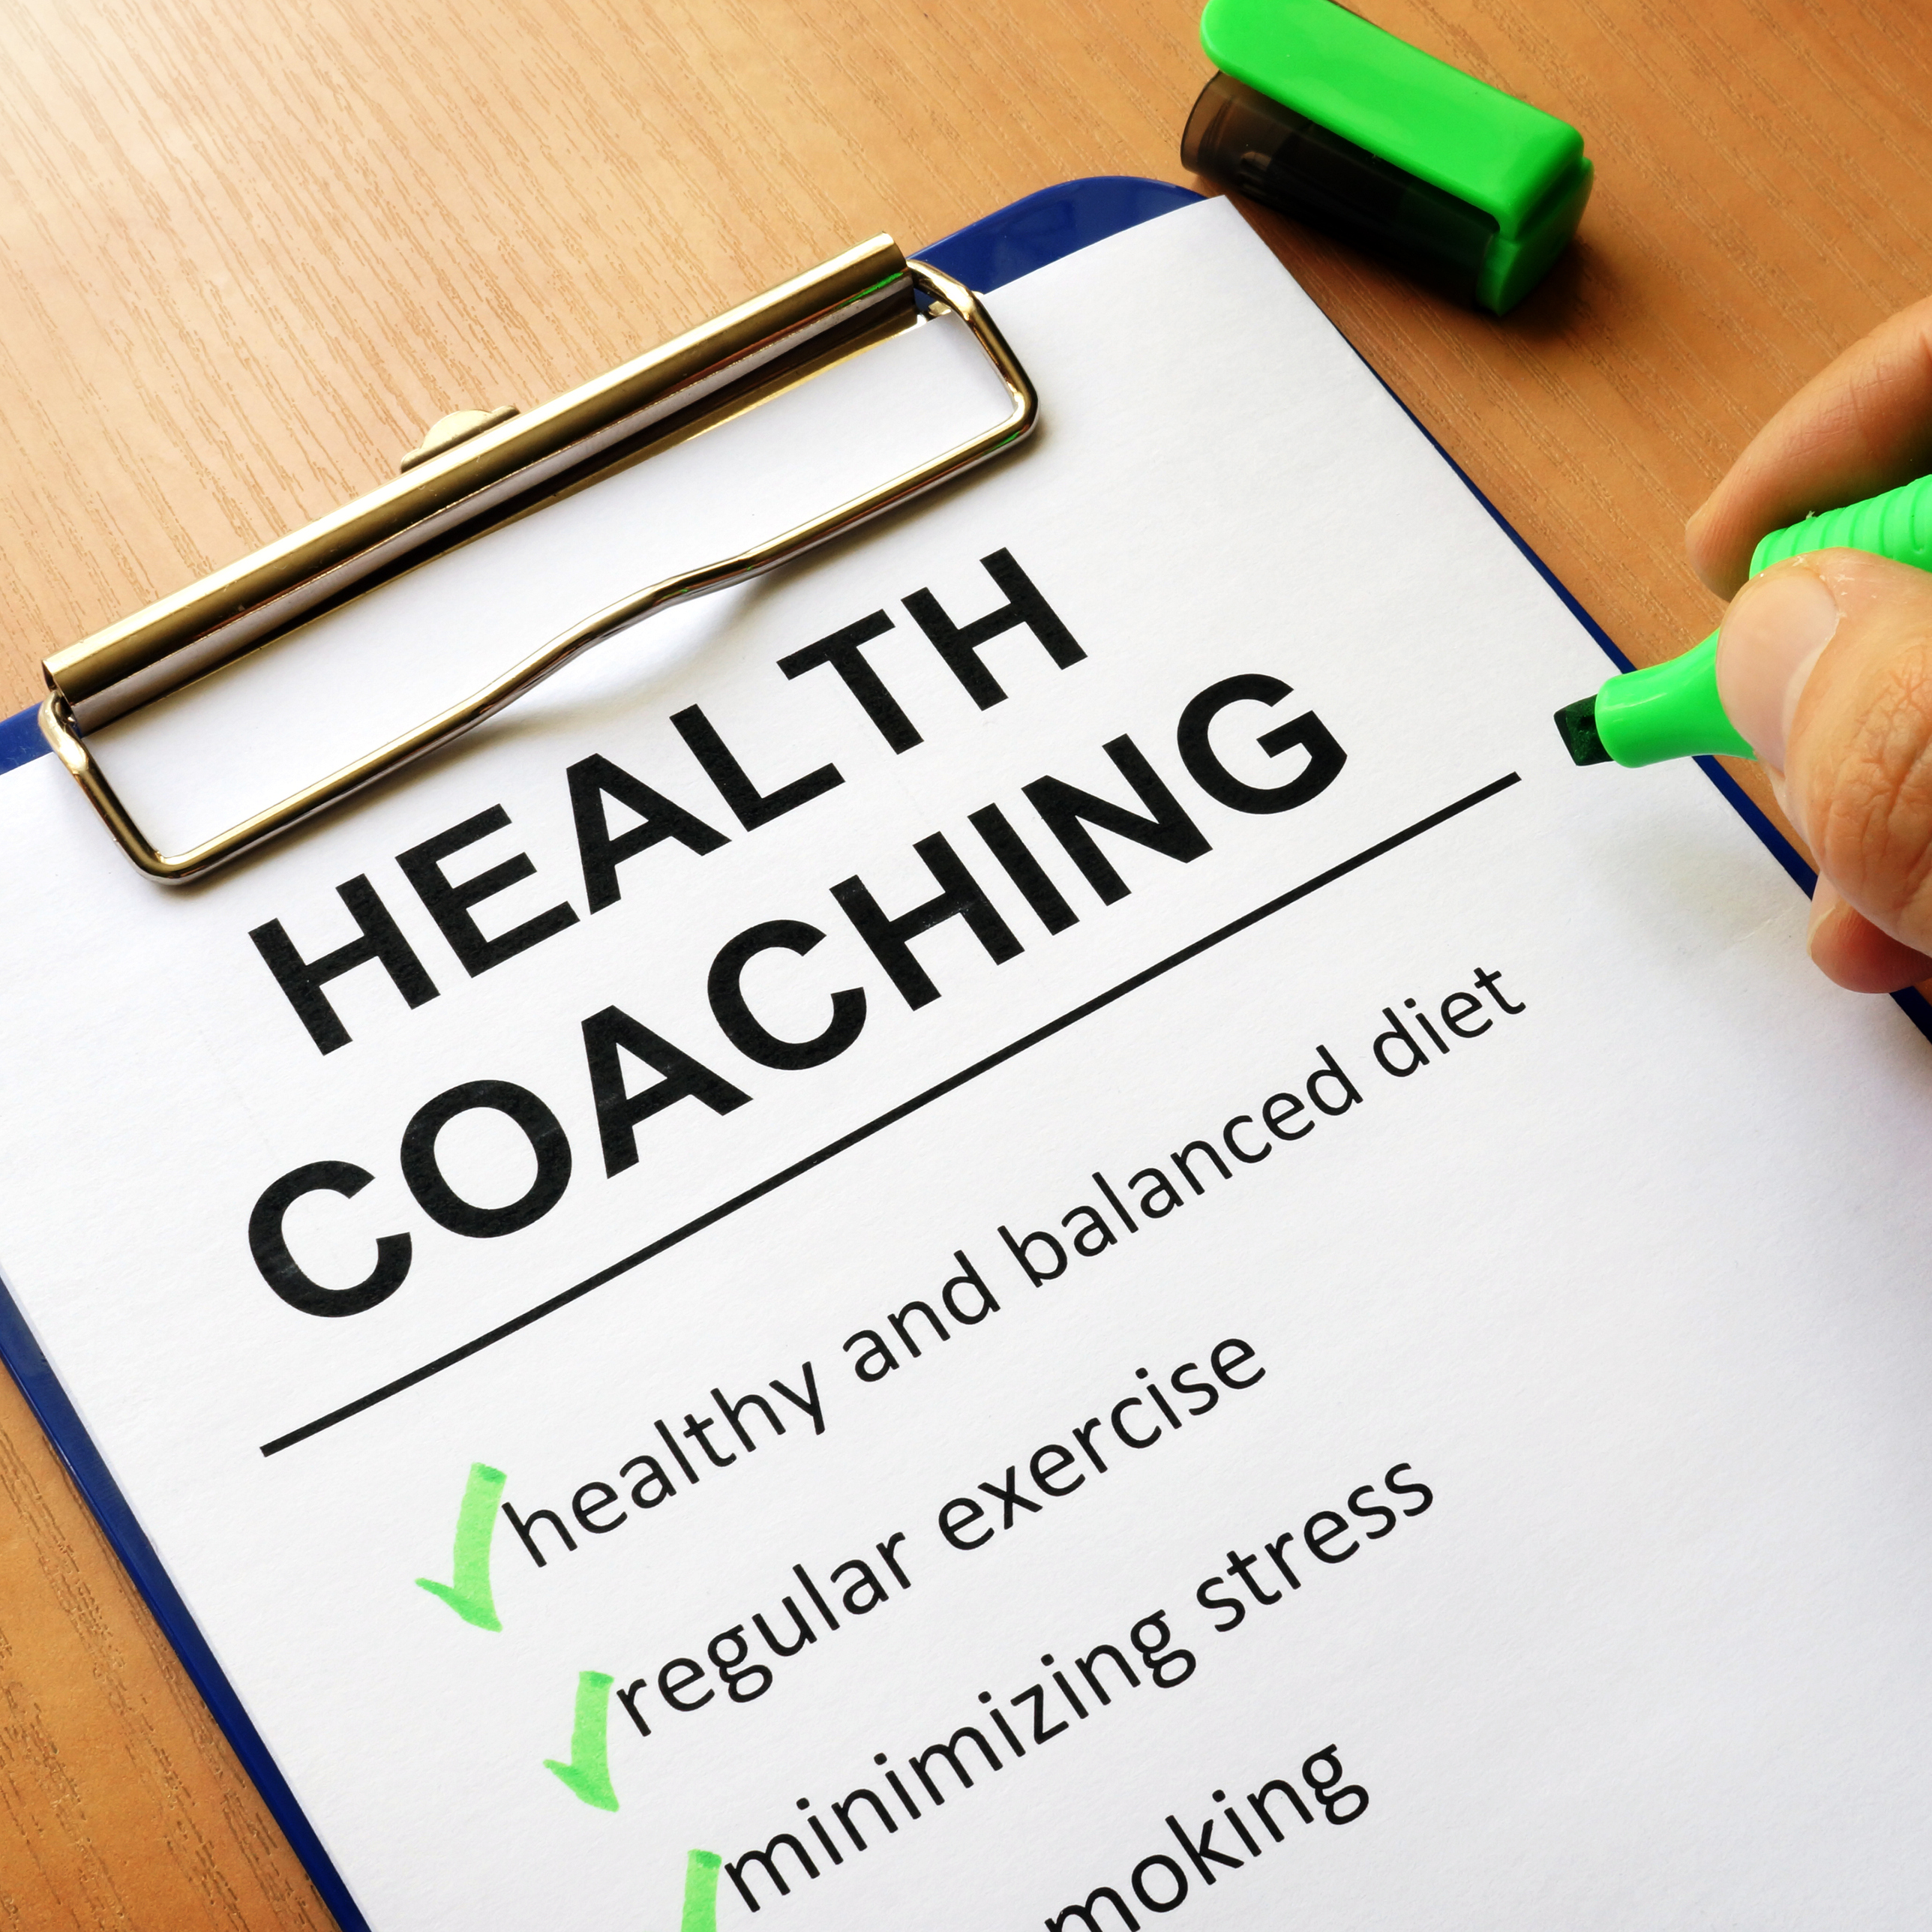 Chris Kresser's Health Coach Course Practicum! – Coachdshen.com